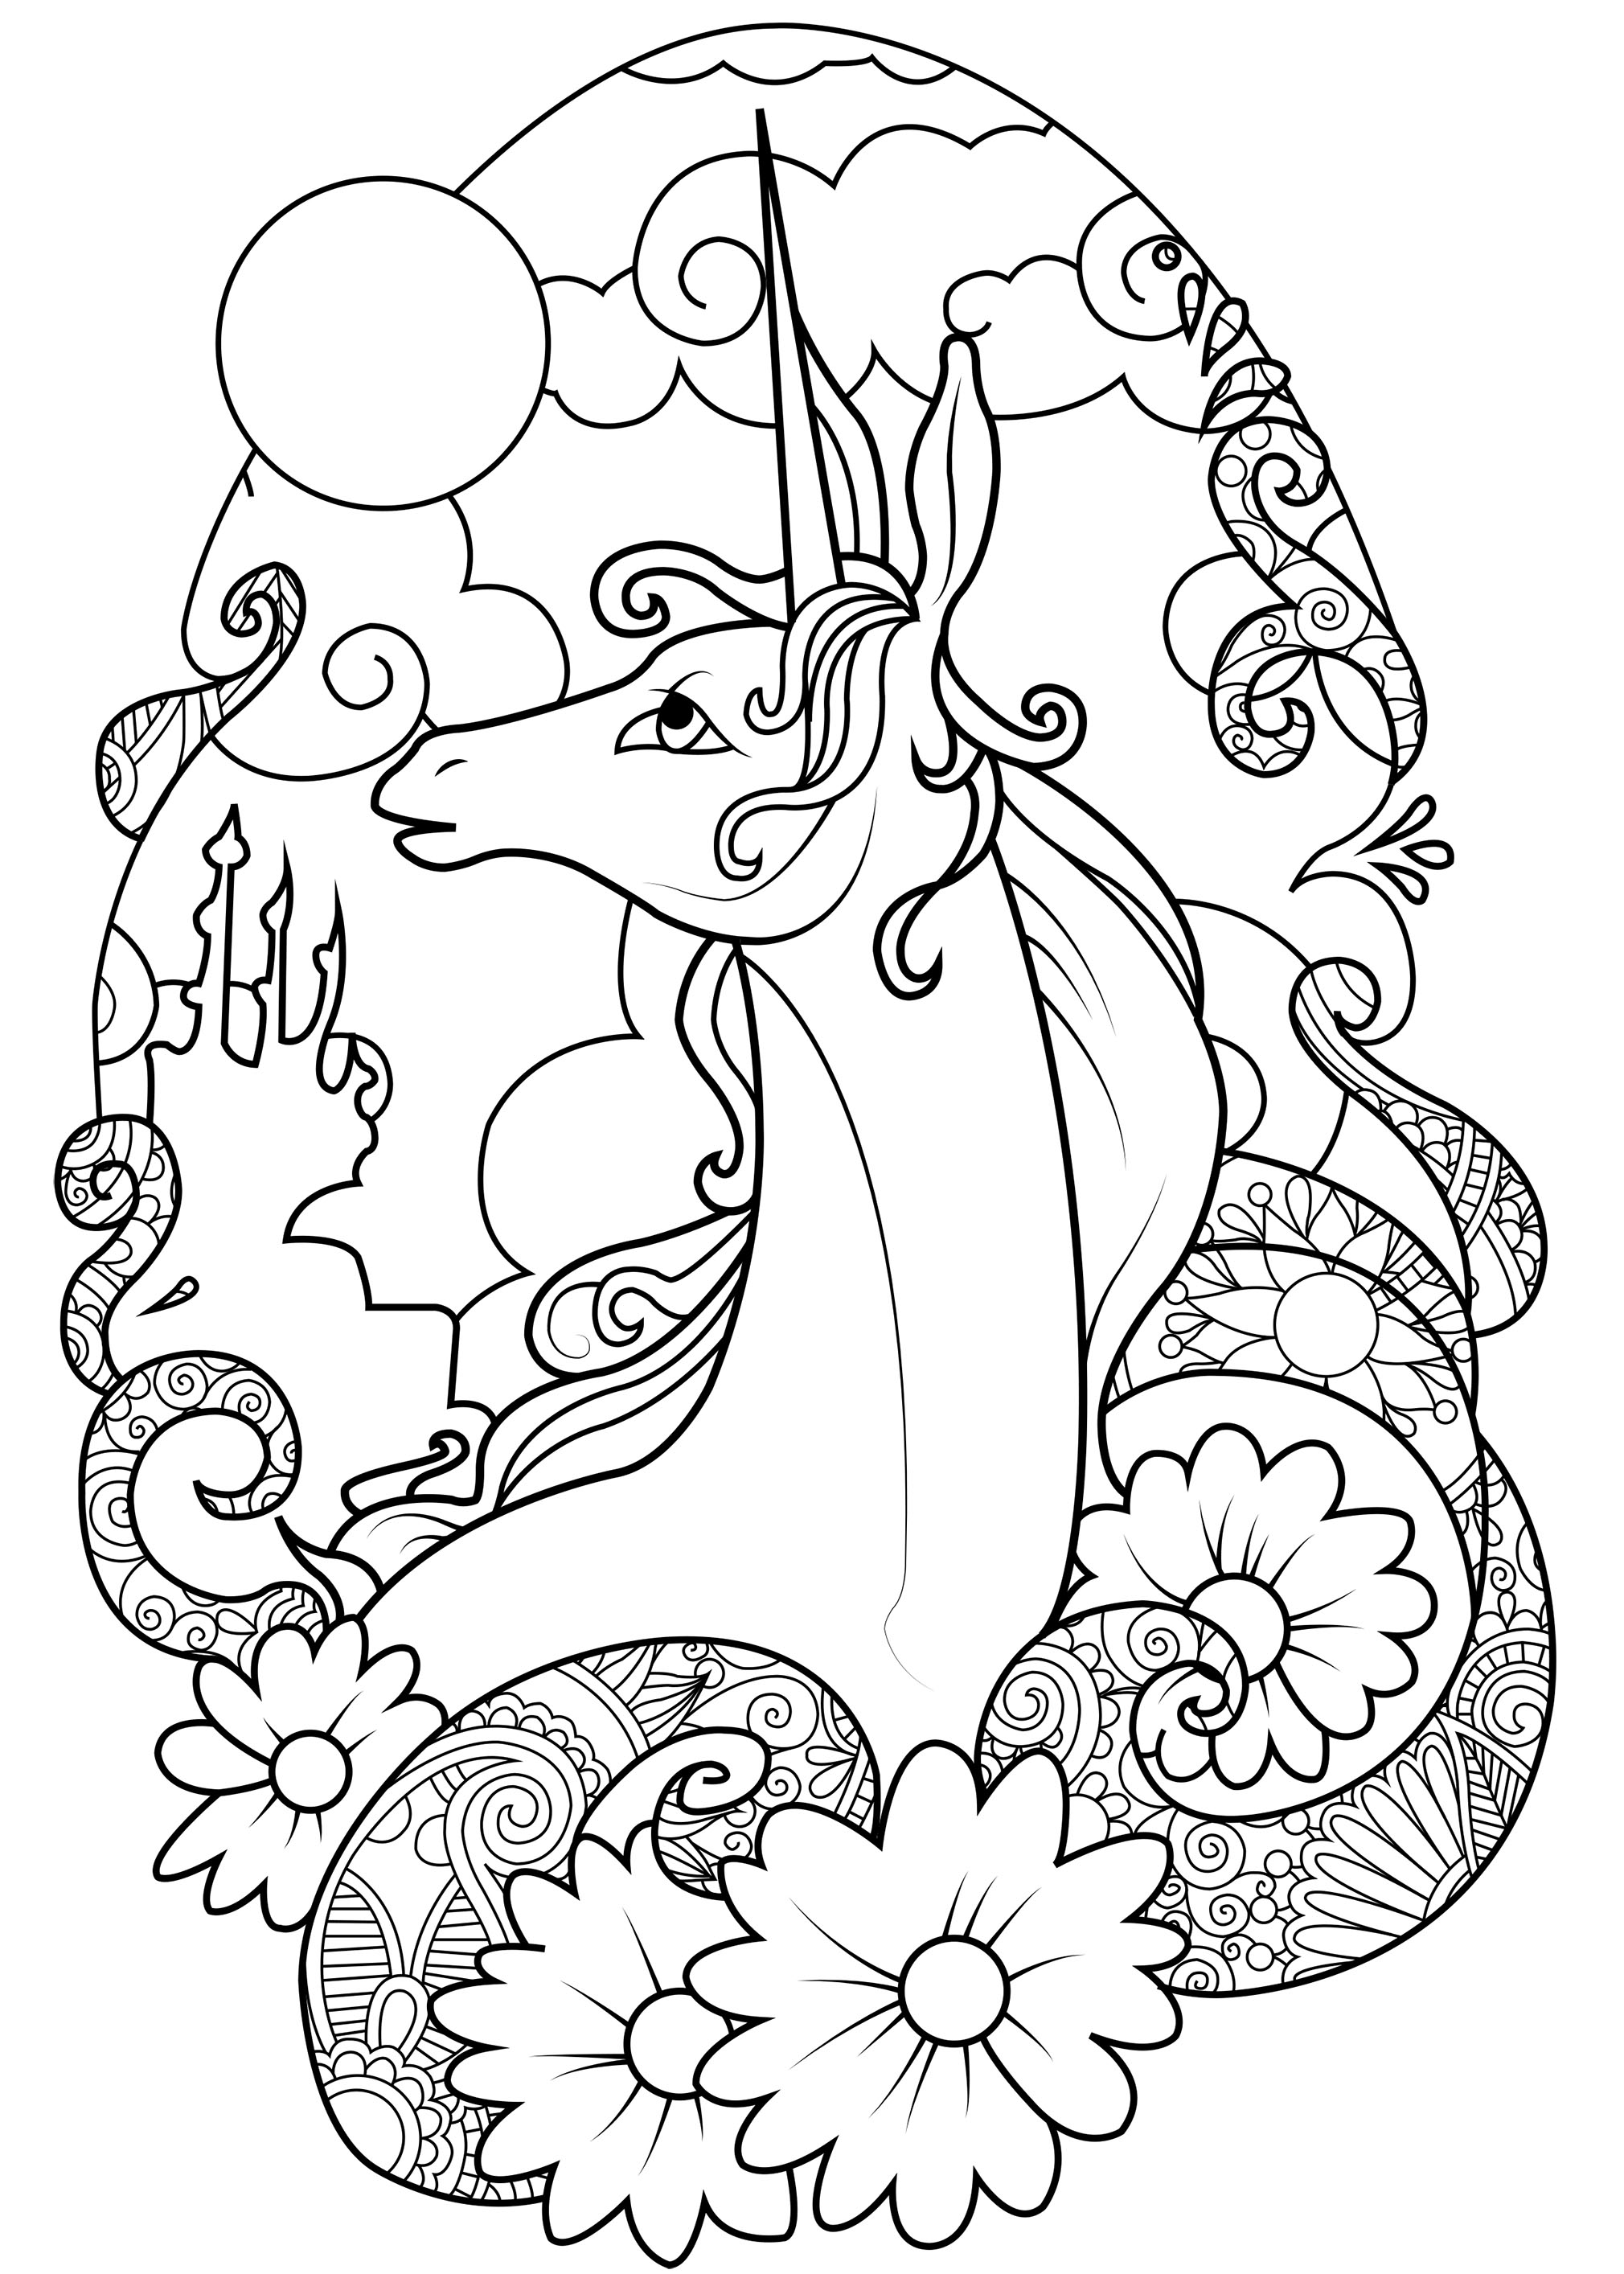 Fairy unicorn - Unicorns Adult Coloring Pages